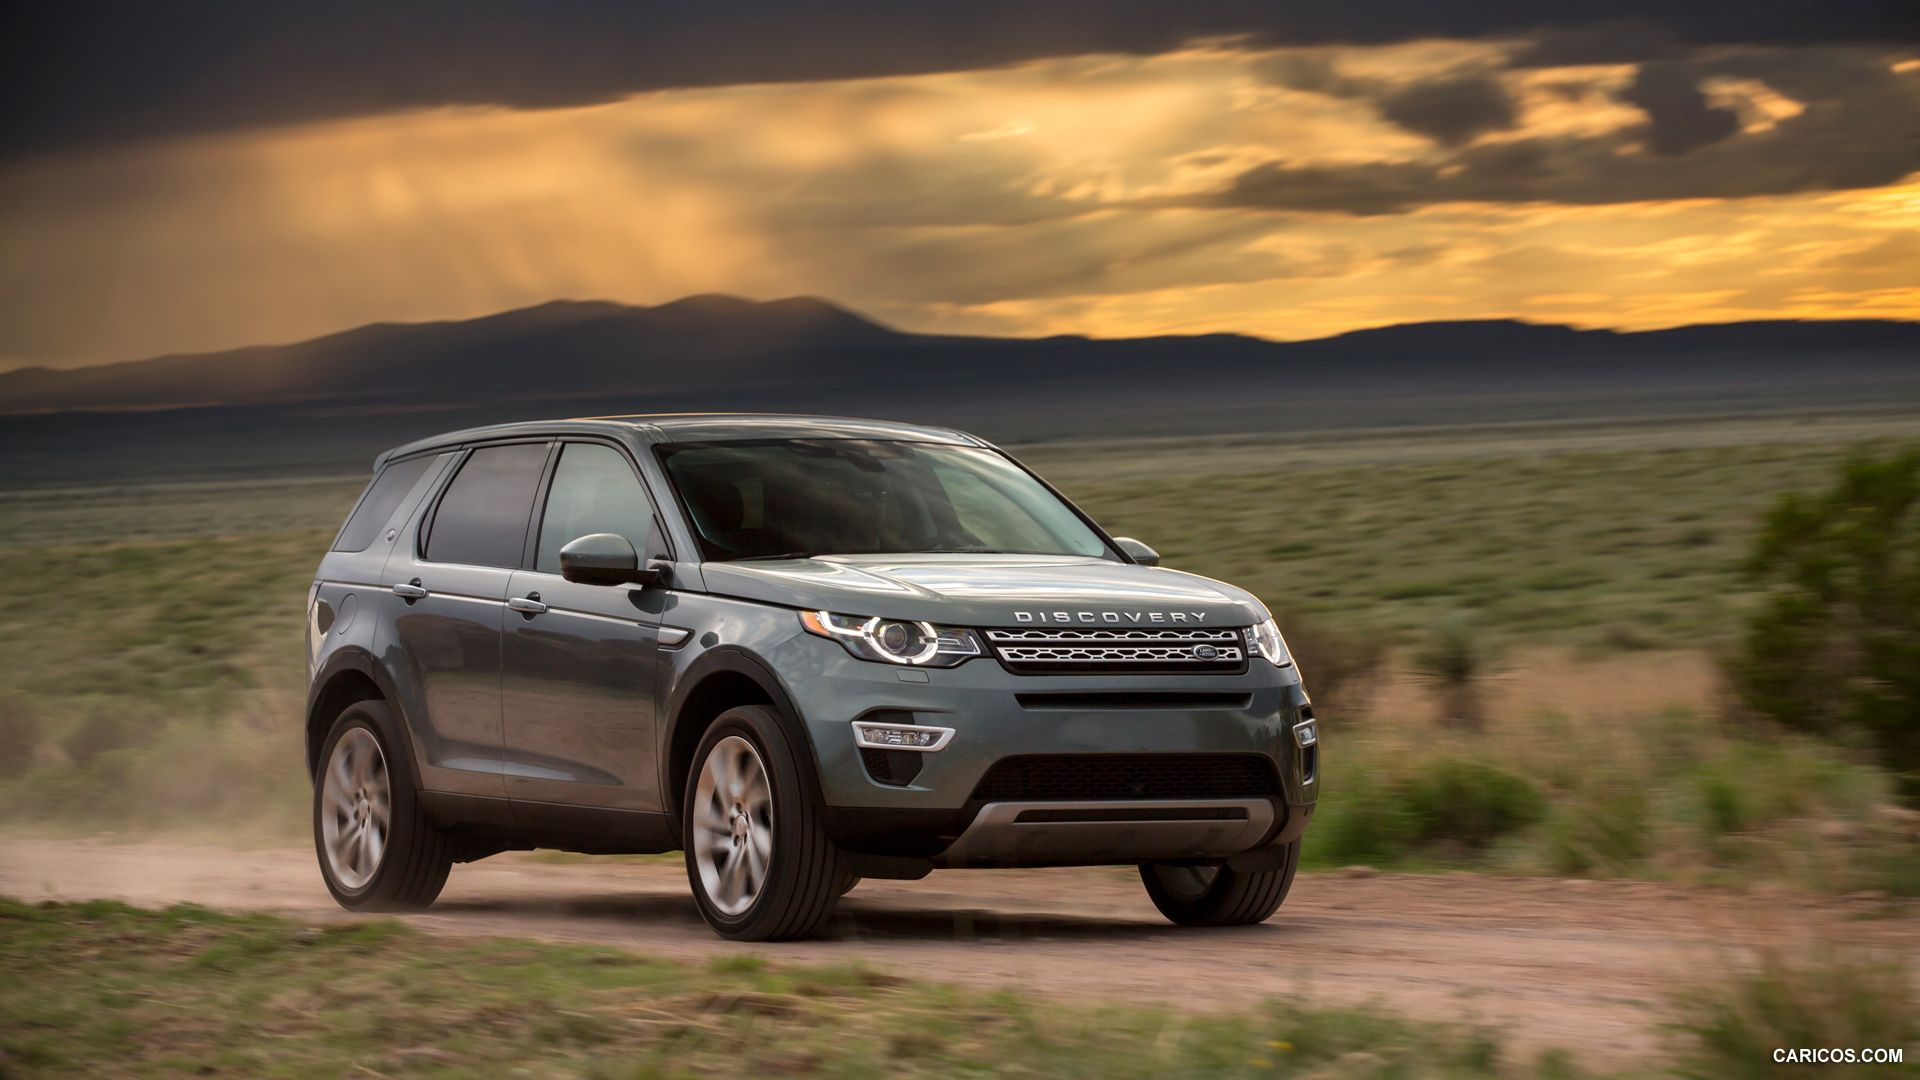 2015 Land Rover Discovery Sport Wallpaper Land rover